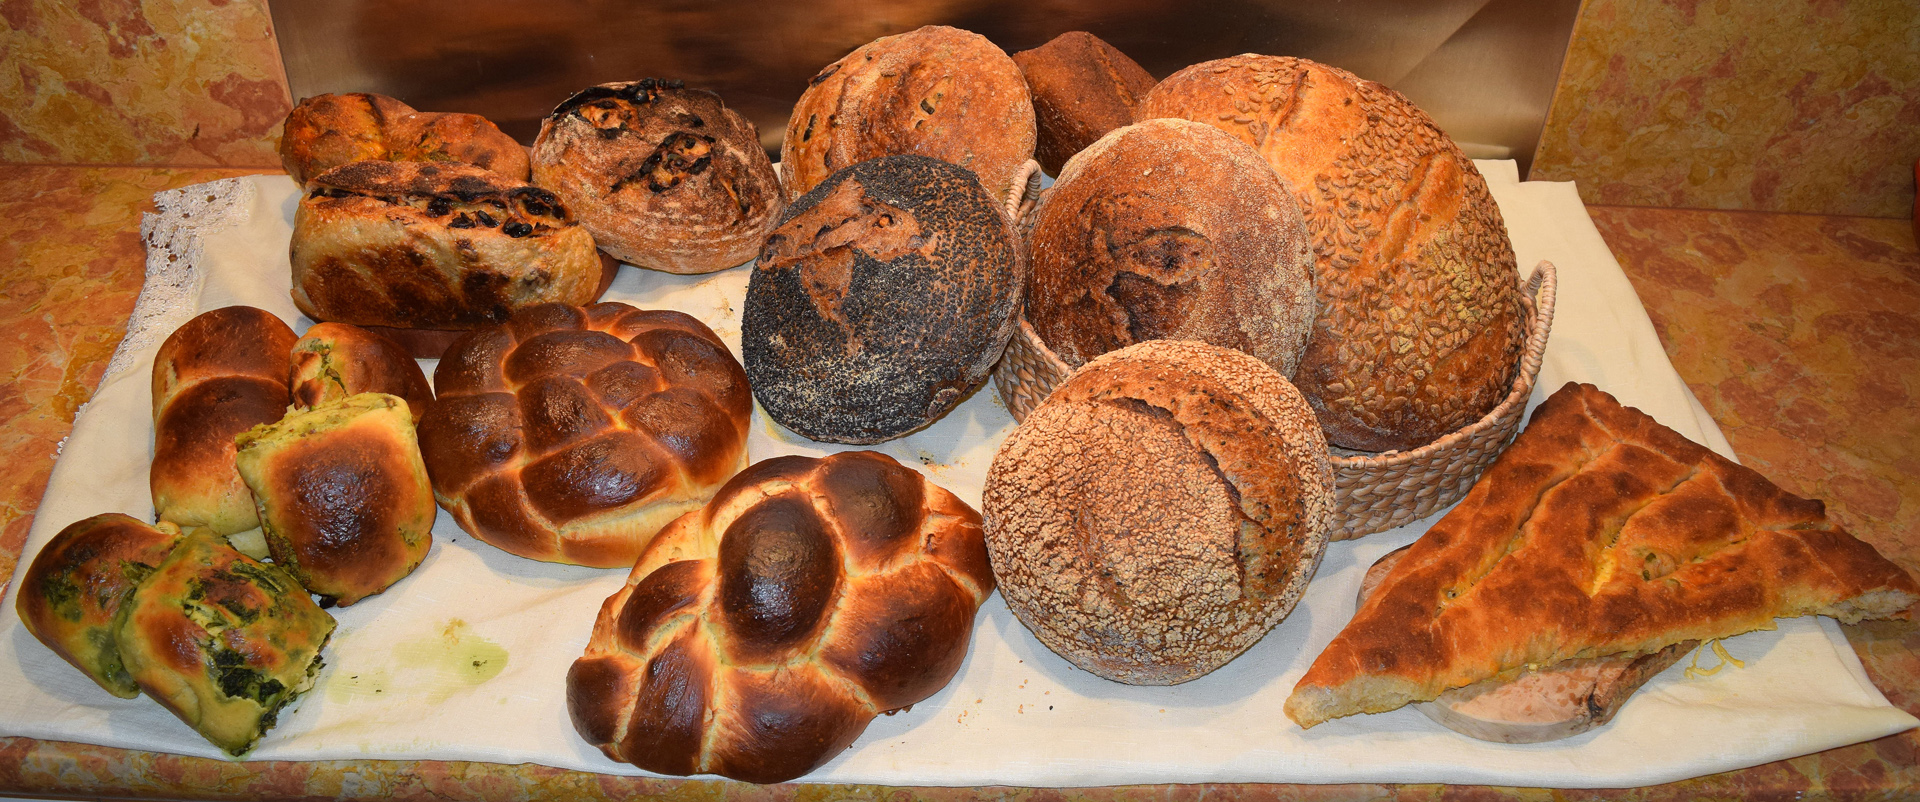 Country breads, challah, filled rolls, fougasse and other kinds of breads are made by hand in Little Sky Bakery's kitchen workshop.